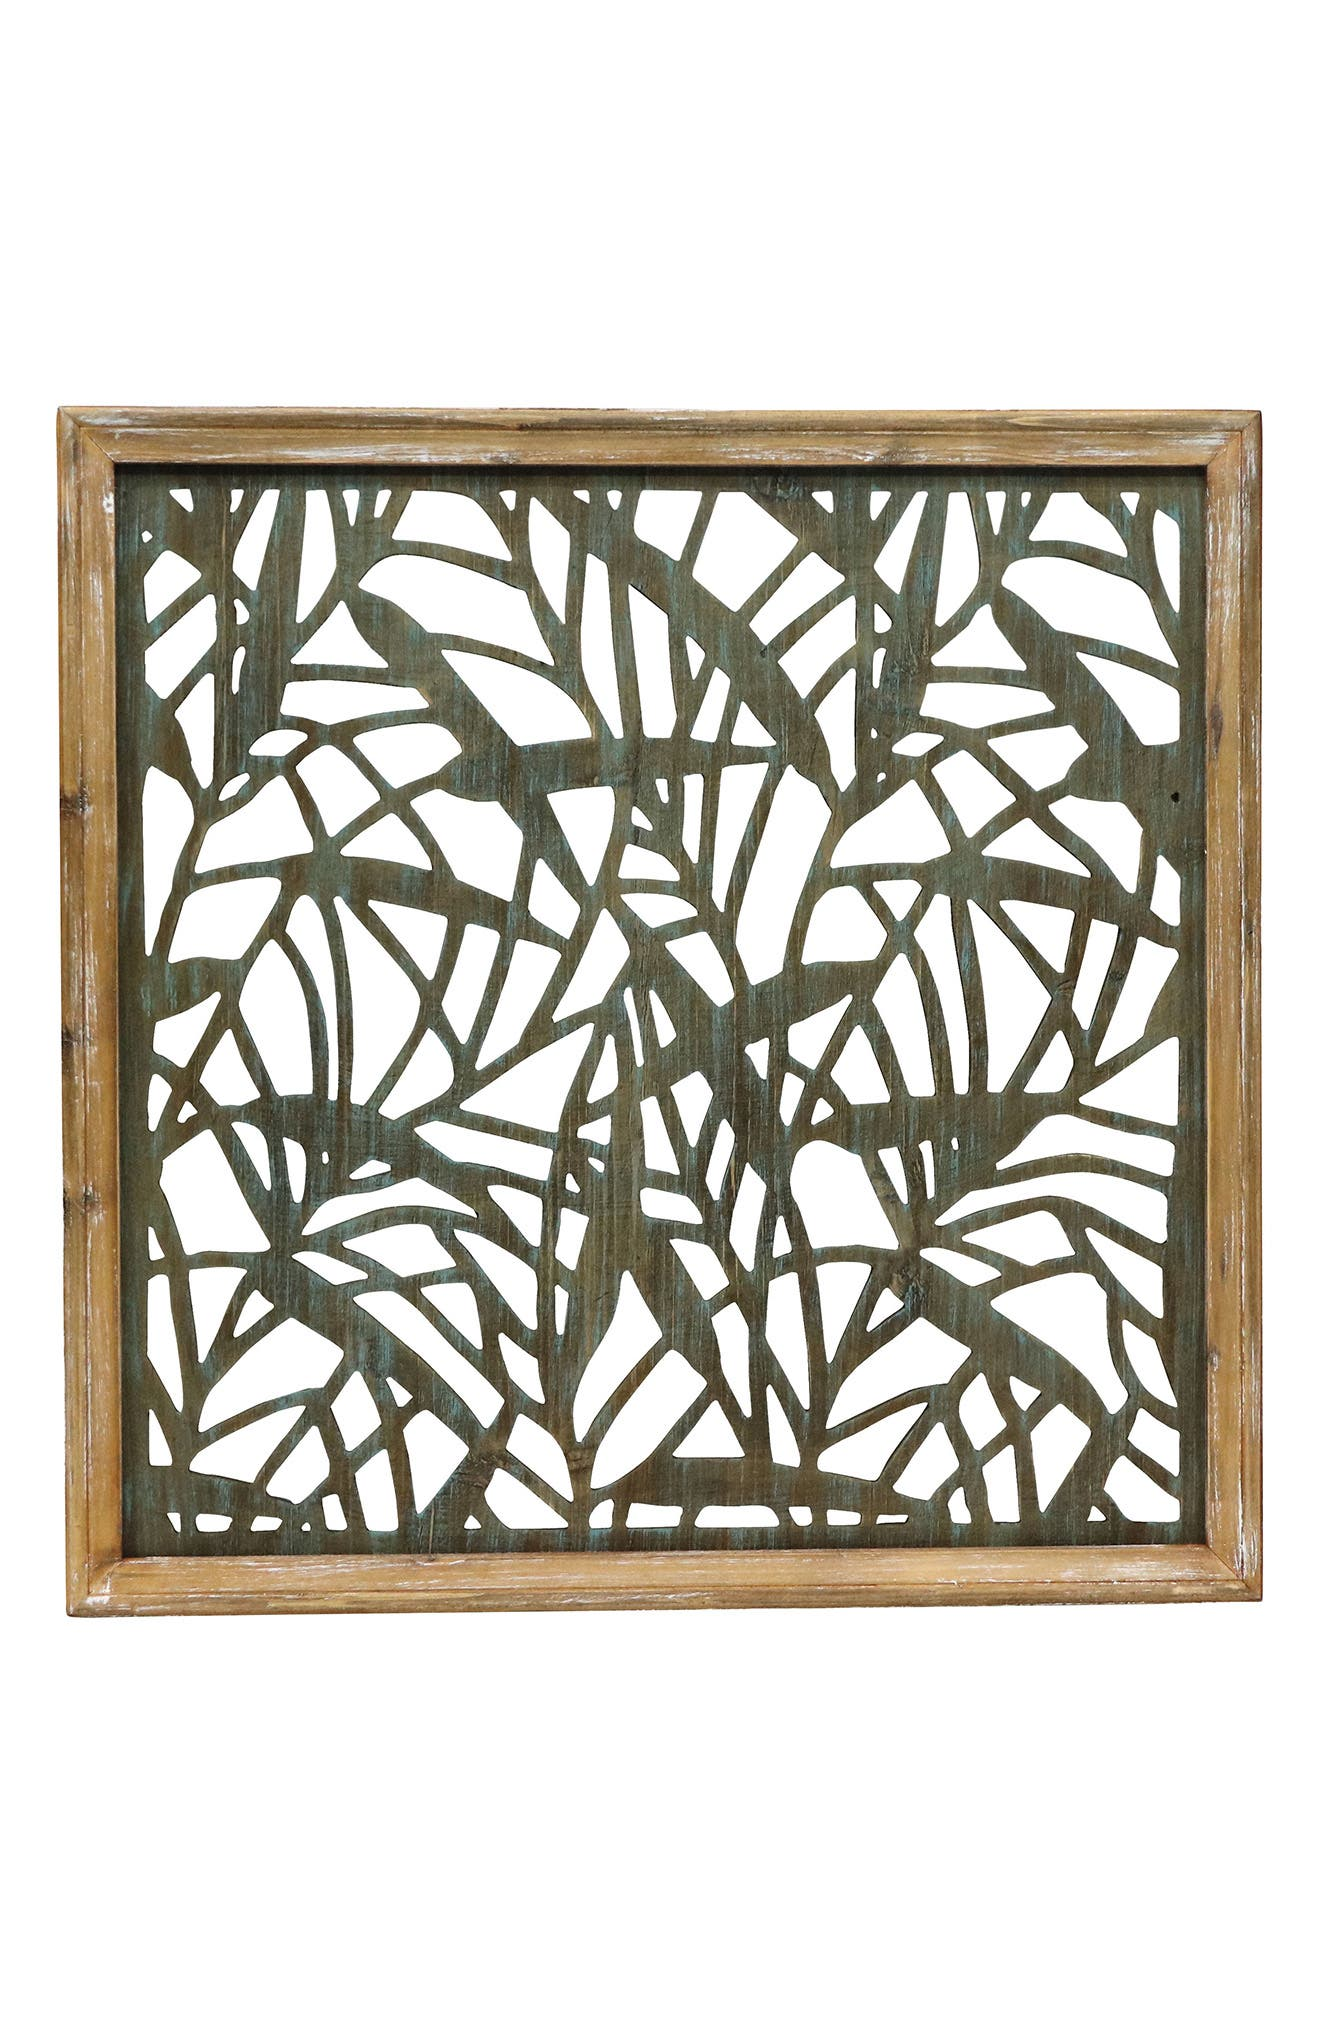 Alternate Image 1 Selected - Foreside Cut Wood Wall Art